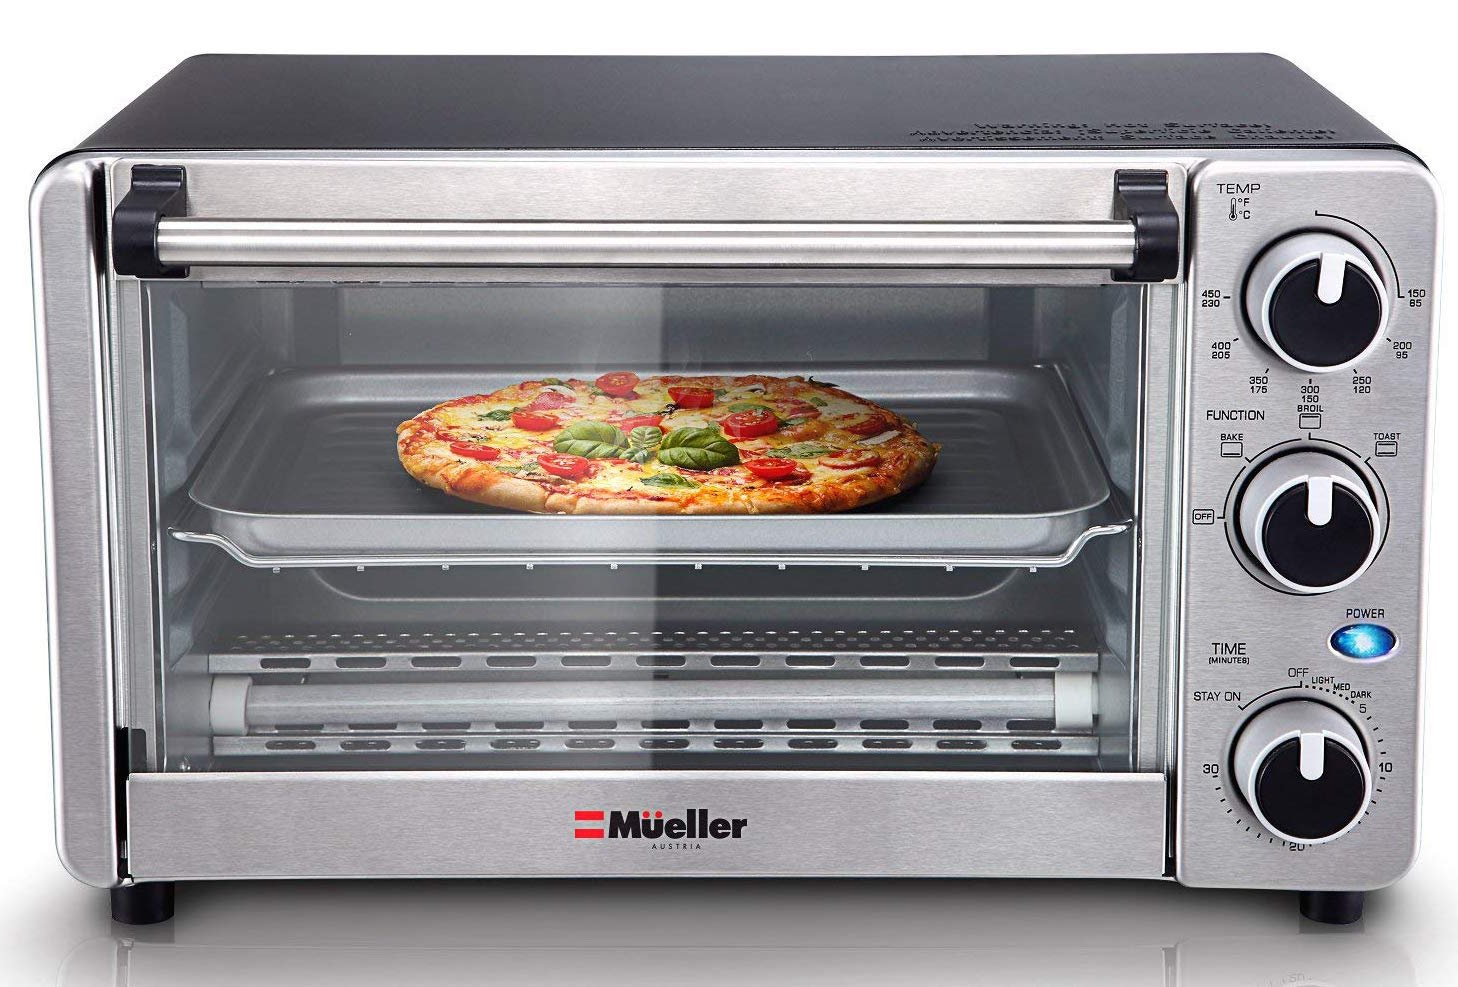 Toaster Oven 4 Slice, Multi-function Stainless Steel Counter-top Design with Timer - Toast - Bake - Broil Settings, Natural Convection - 1100 Watts of Power, Includes Baking Pan and Rack by Mueller Austria